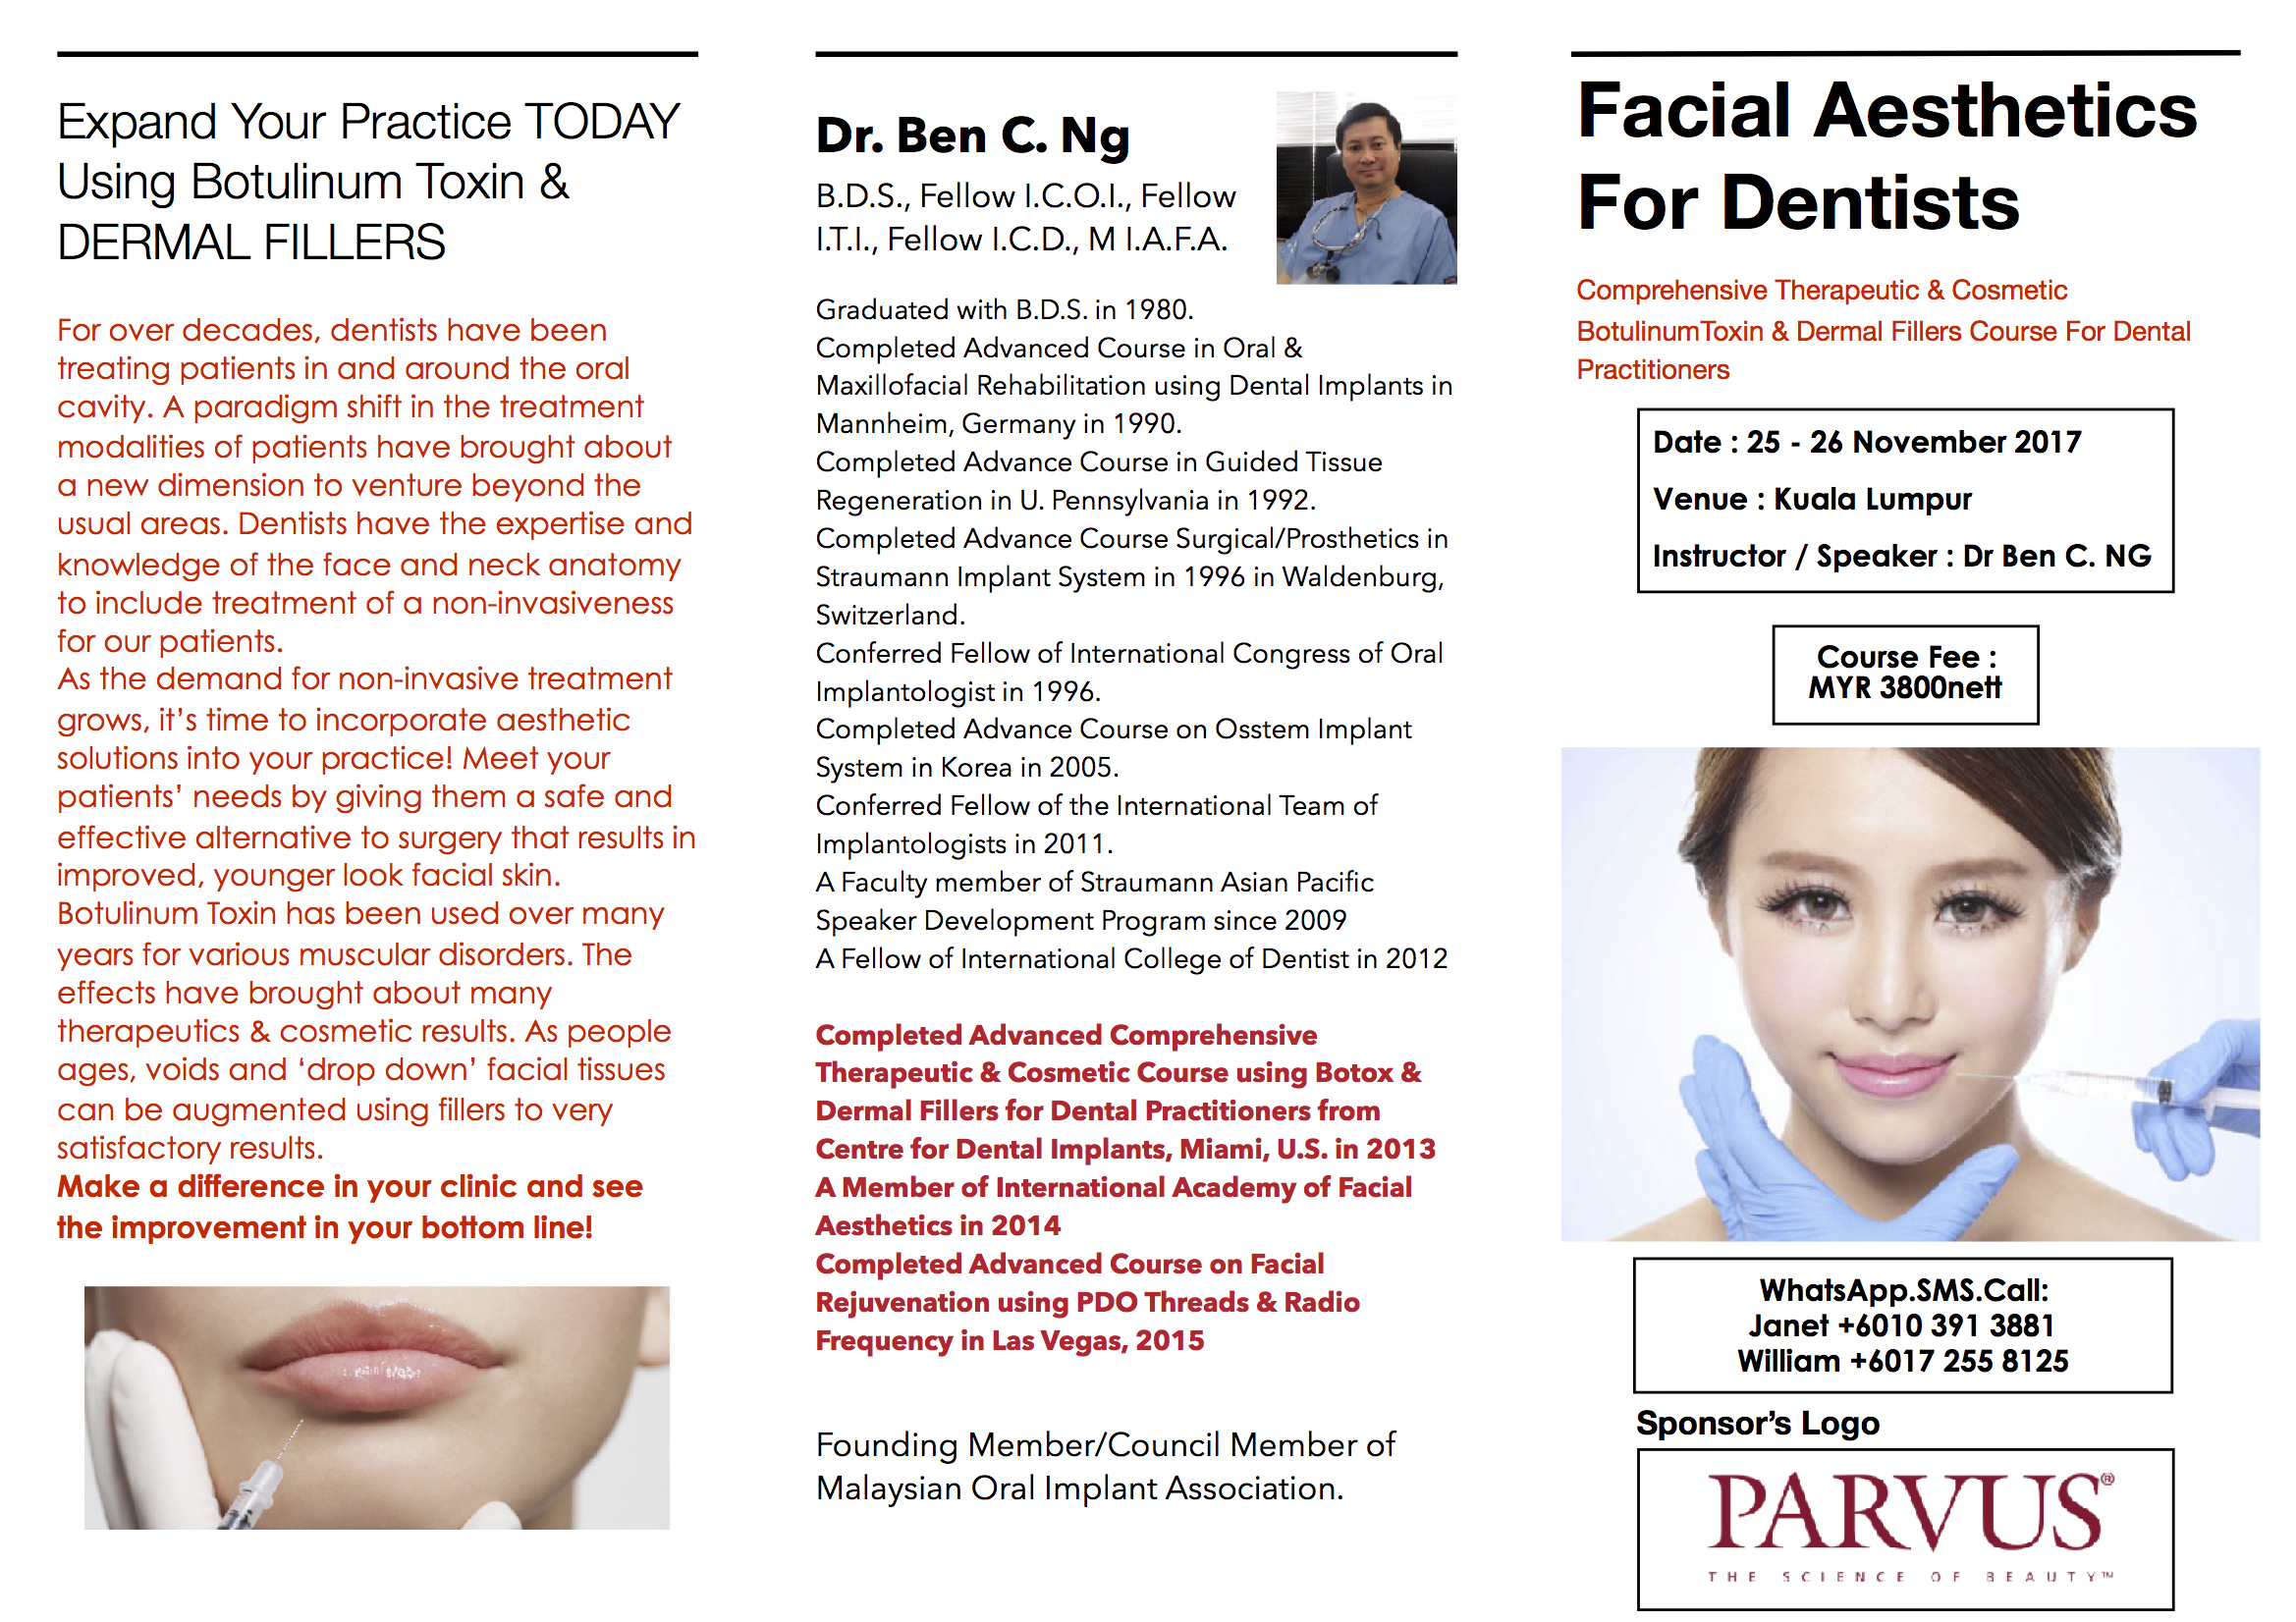 dentistsnearby-facial-aesthetics-malaysia-1-updated